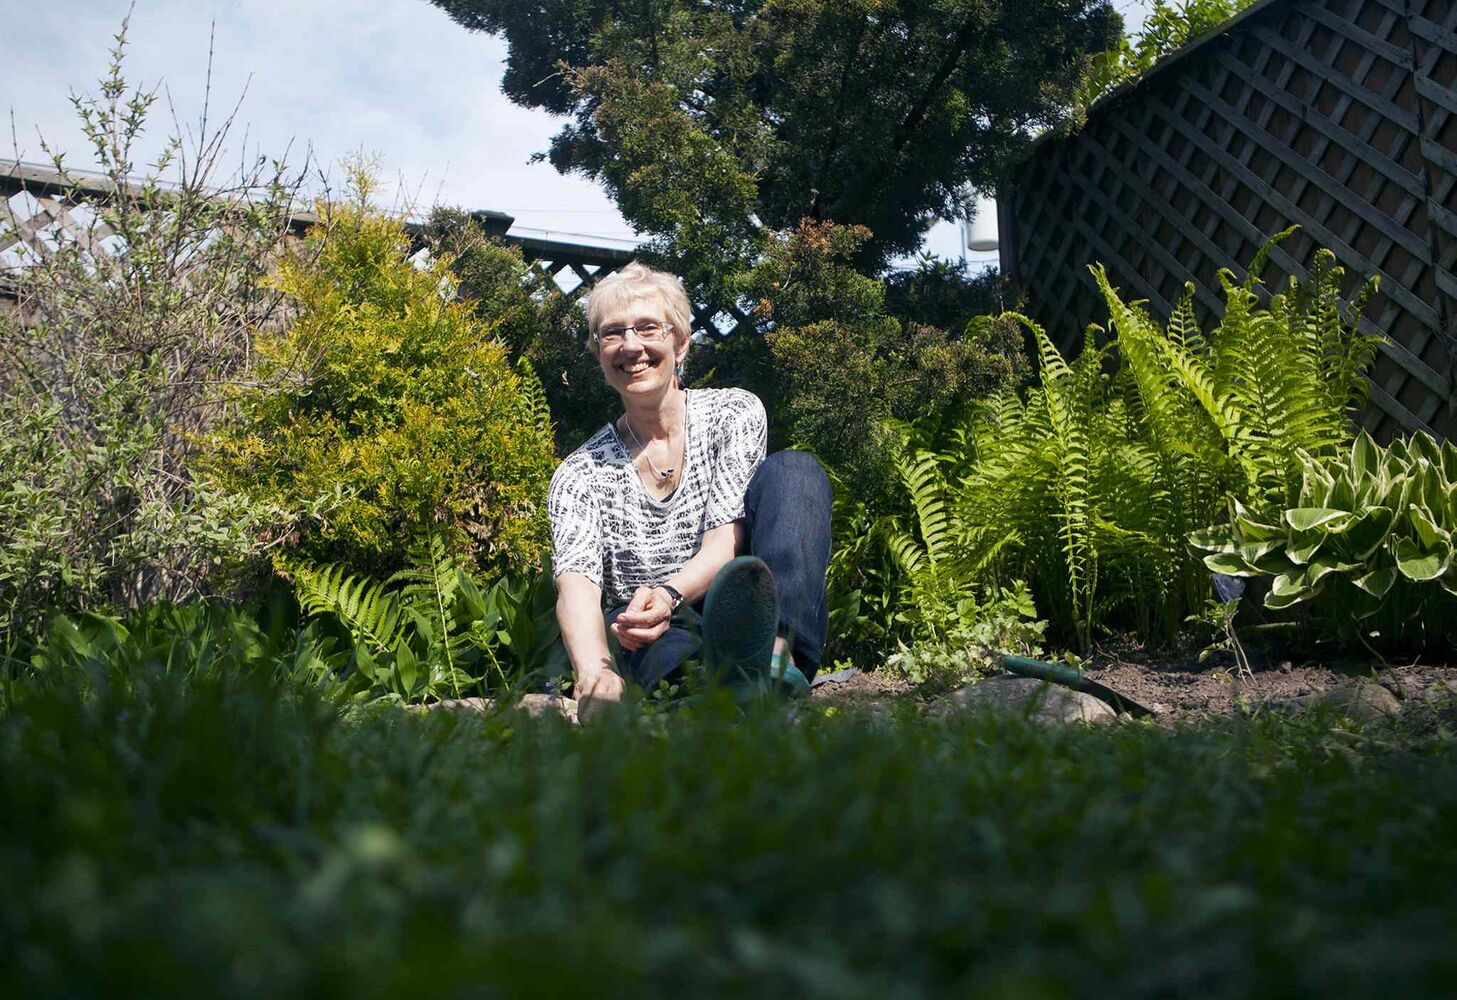 Eileen Boxall limits her gardening activity after suffering a lower-back injury last year.